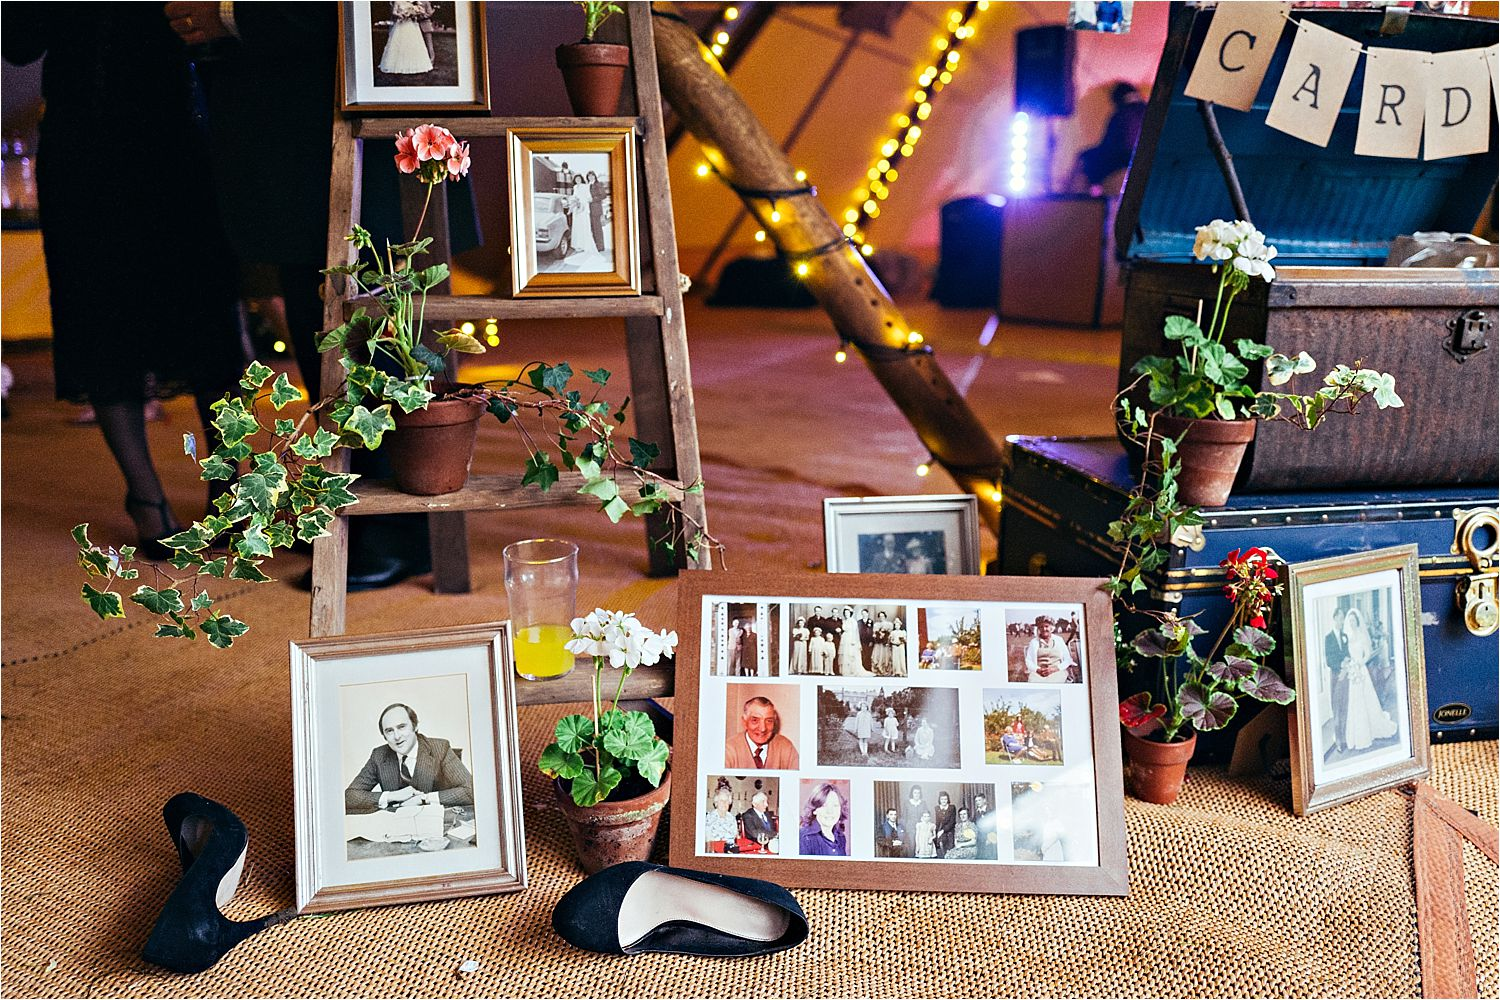 Styling details for Bedfordshire tipi wedding, styling by White Button Weddings, tipi by Country Tipis